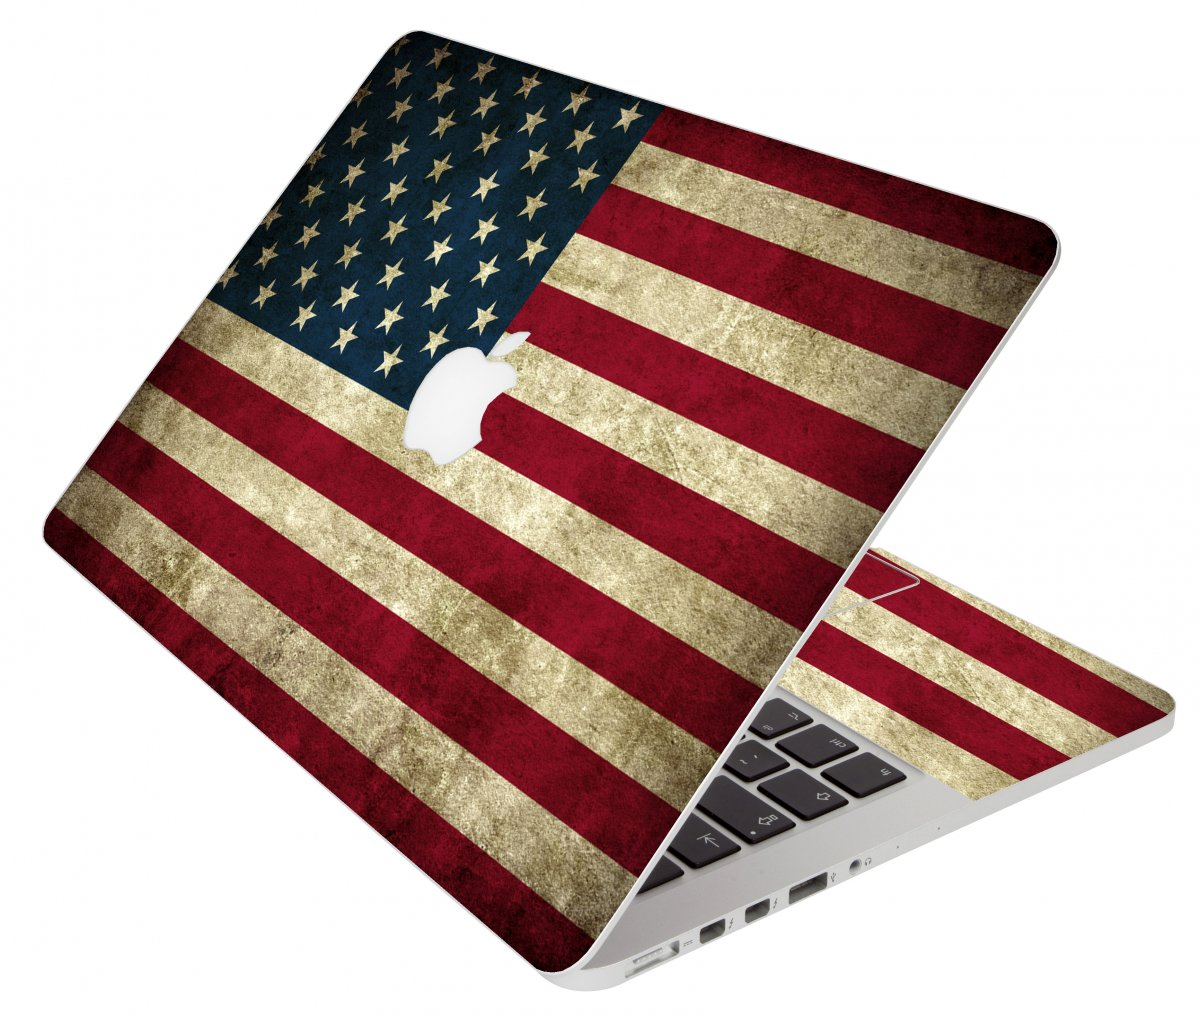 American Flag Apple Macbook Original 13 A1181 Laptop Skin